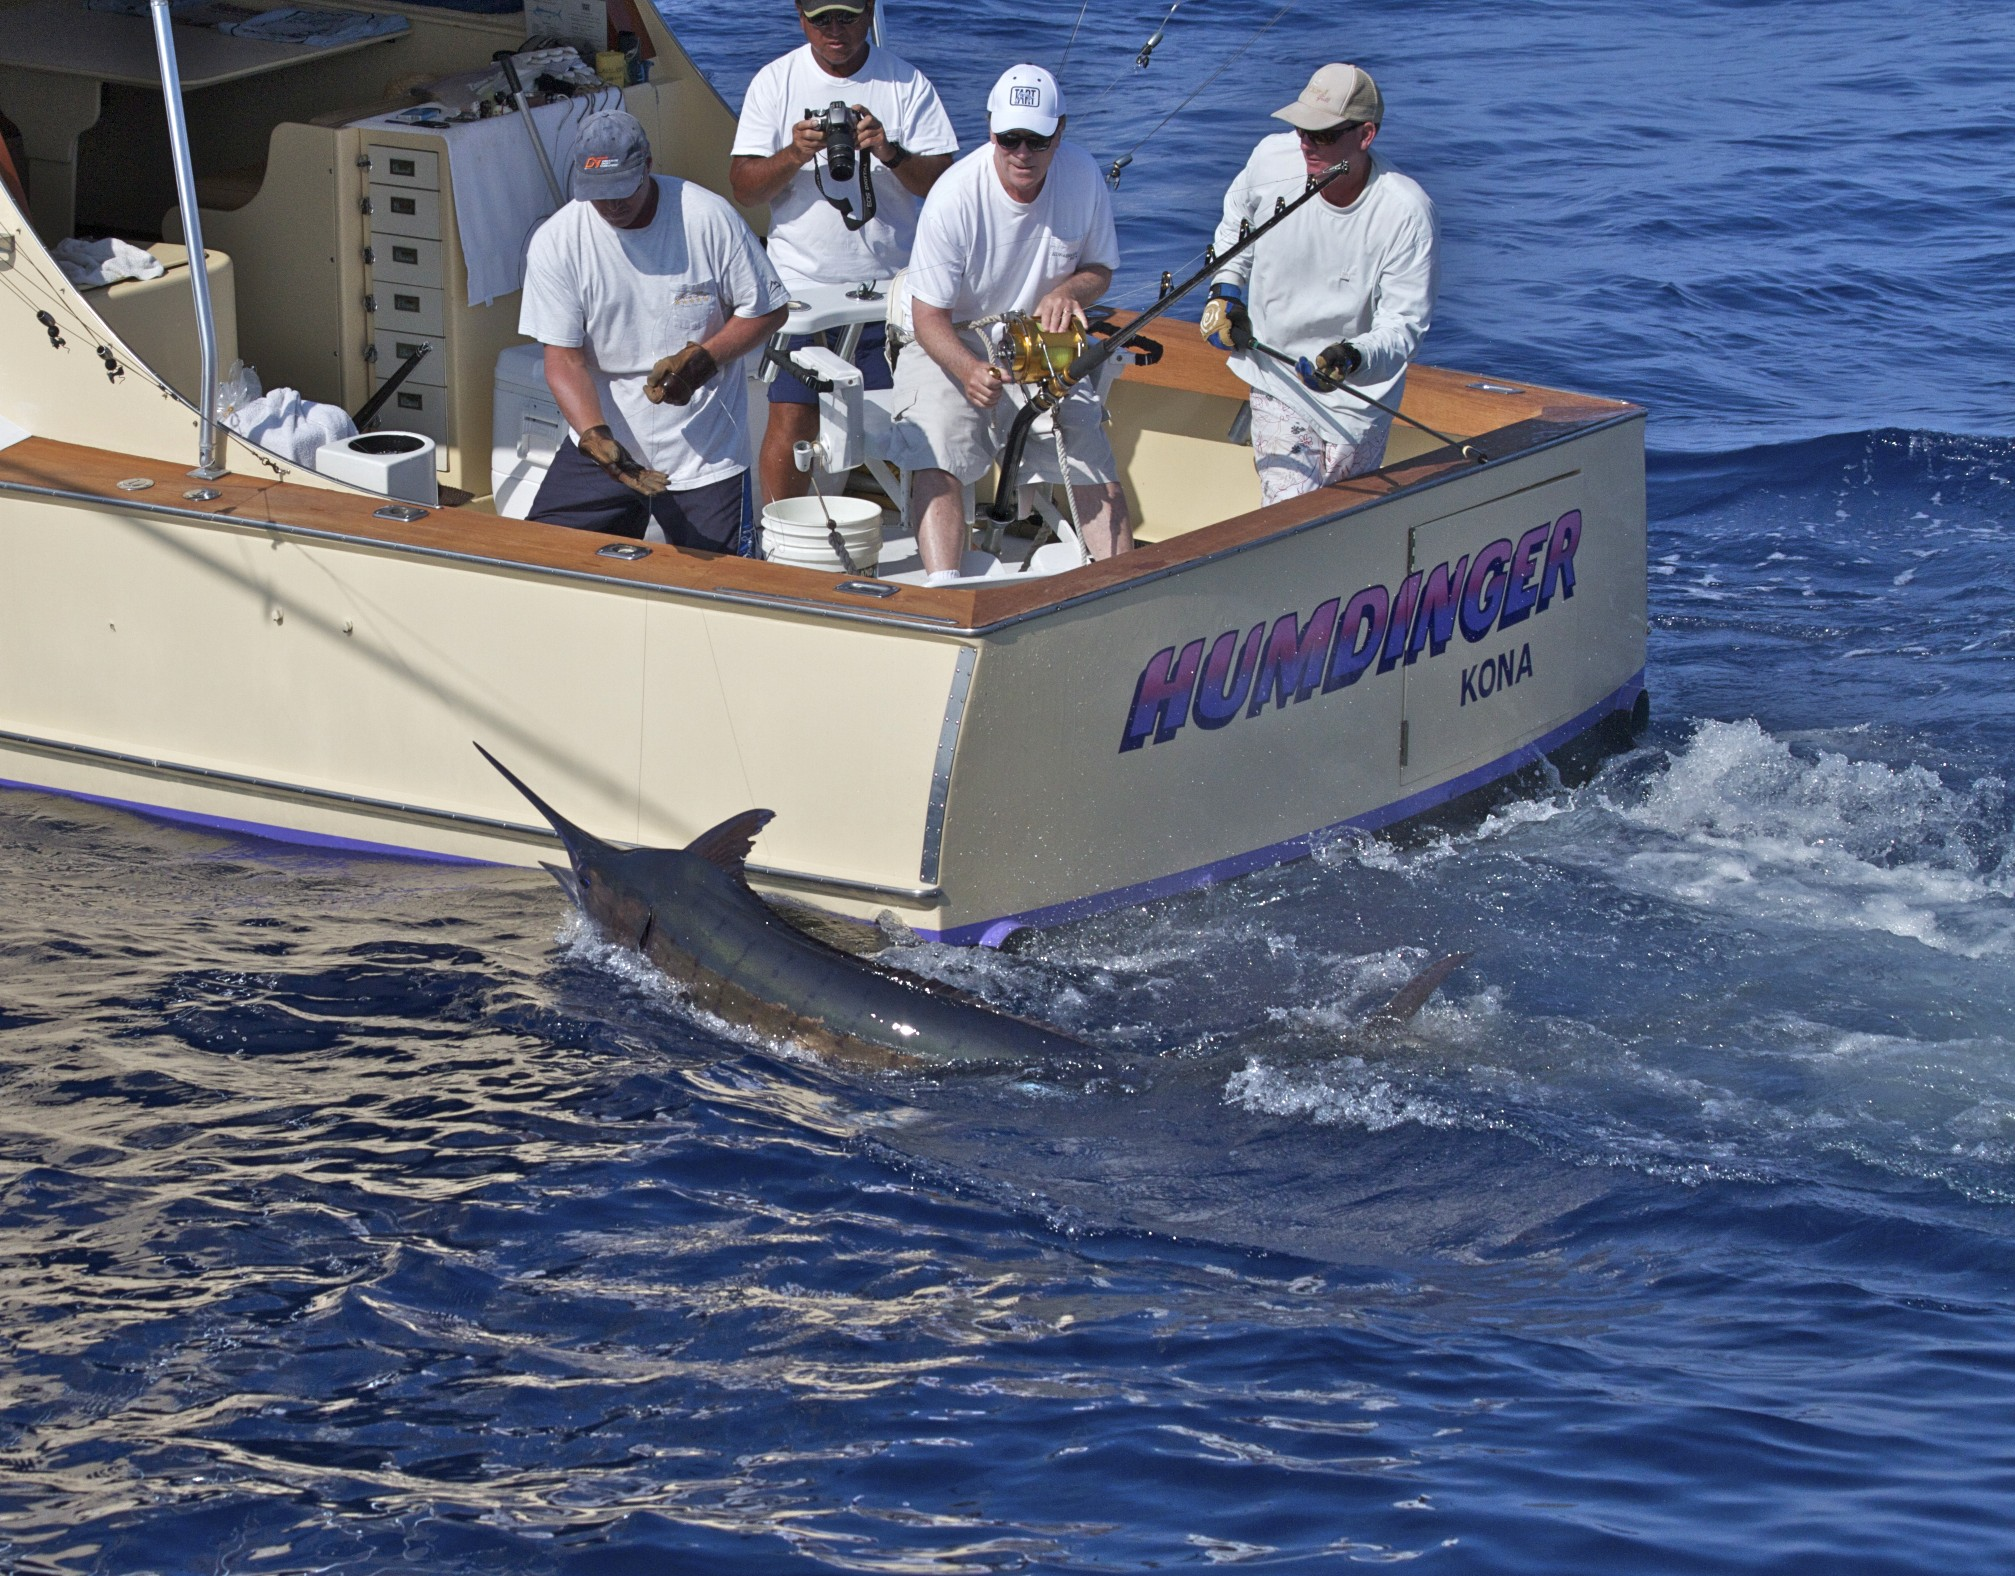 Fishing picture kona blue marlin tailwalking for Hawaii fishing charters